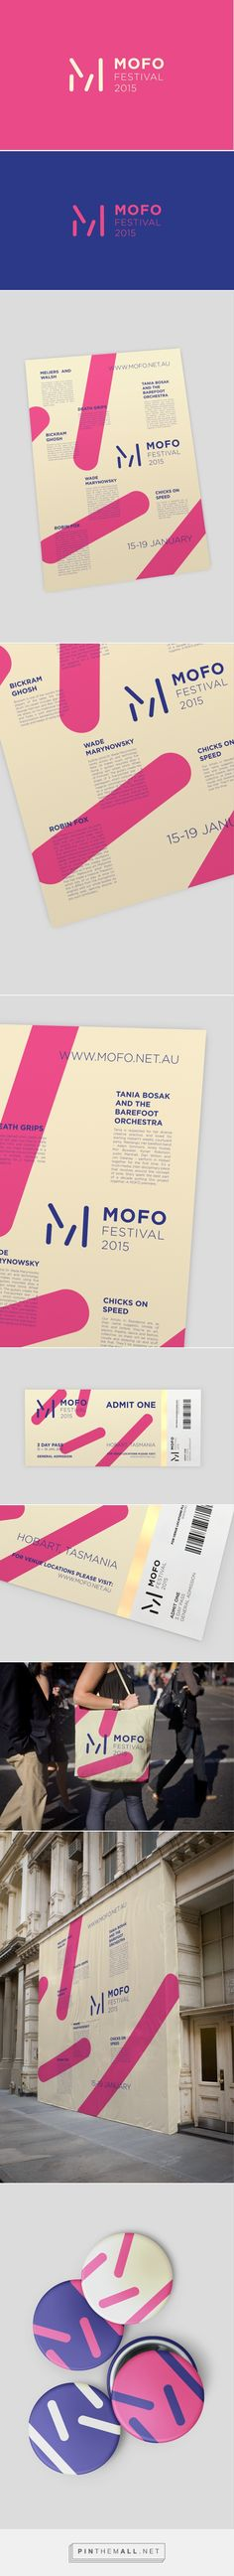 MOFO Festival by Harley Jackman. Like the use of the logo being deconstructed into simplified shapes that can be used across the identity, and used as pattern, but still identifies as the brand.